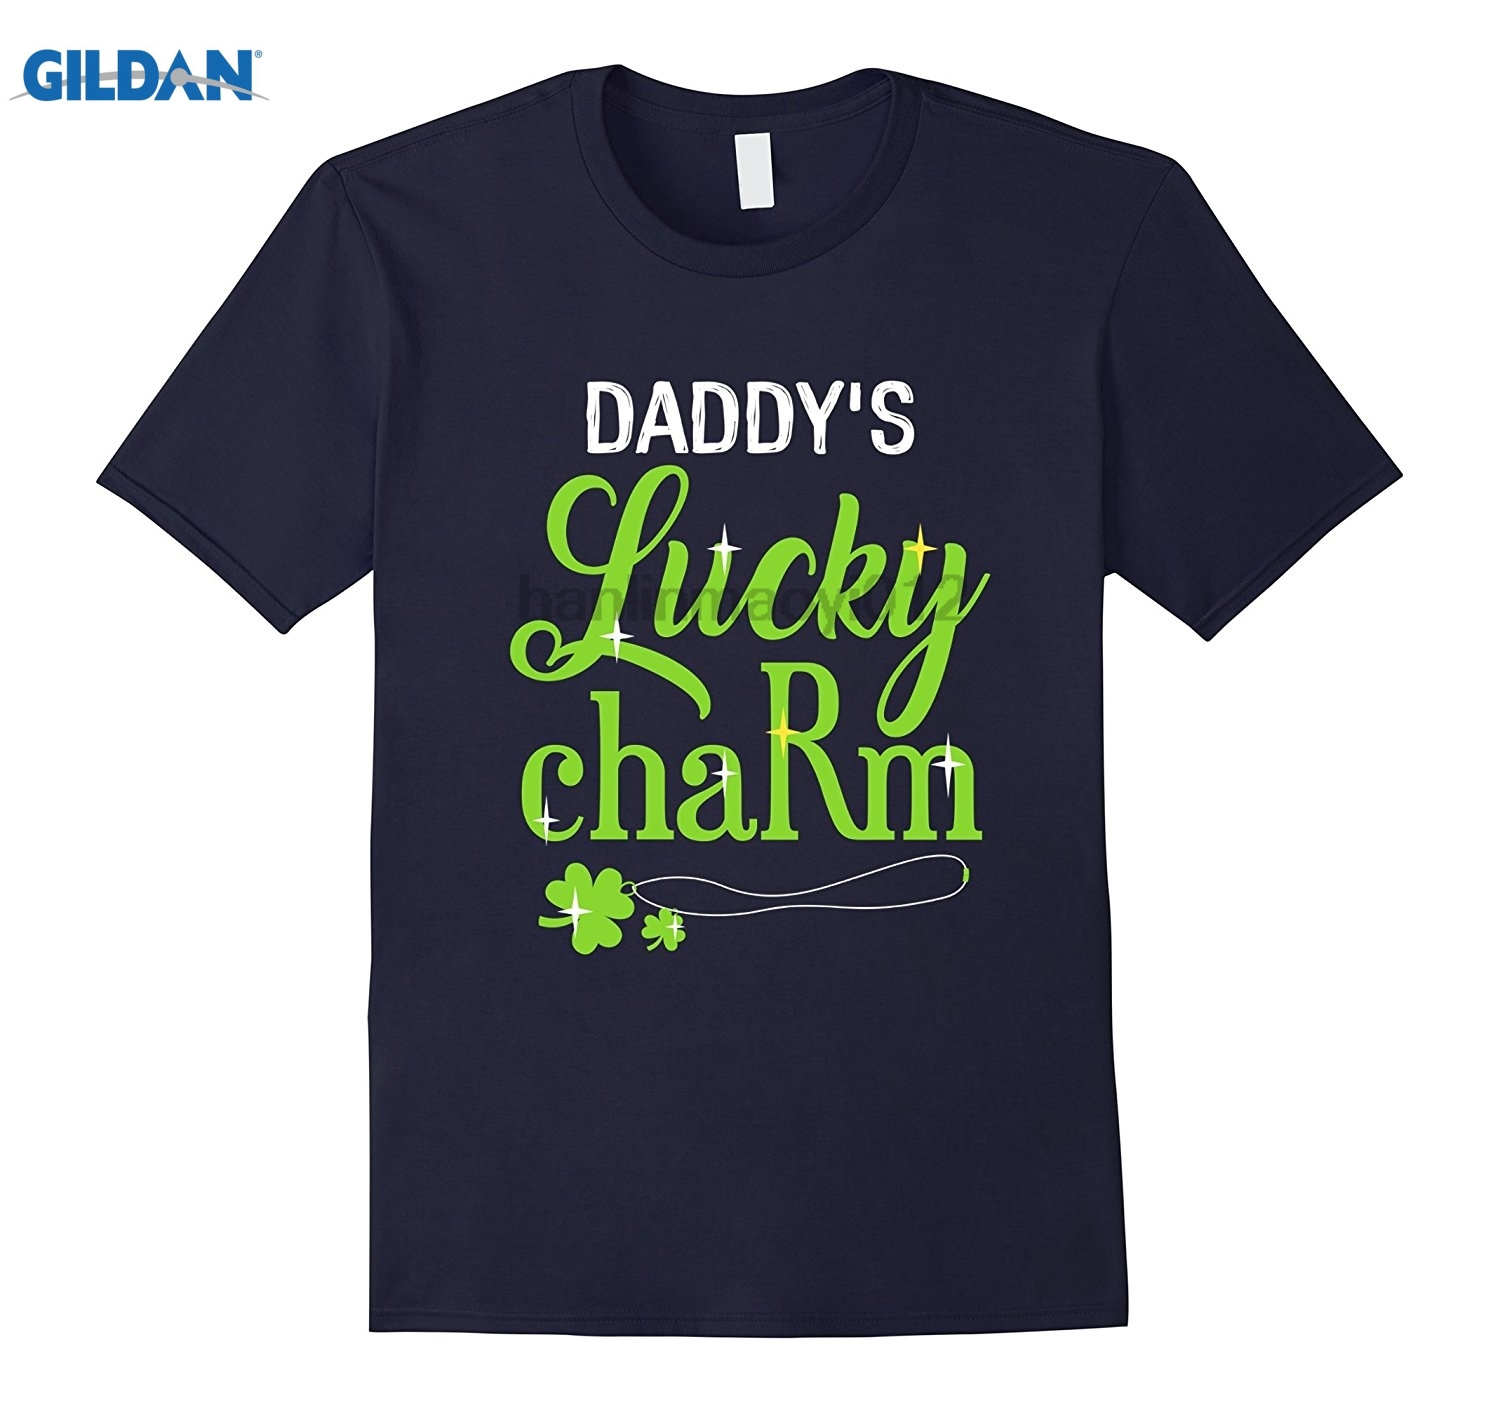 GILDAN FUNNY DADDYS LUCKY CHARM T-SHIRT - SAINT PATRICKS DAY GIFT sunglasses women T-shi ...